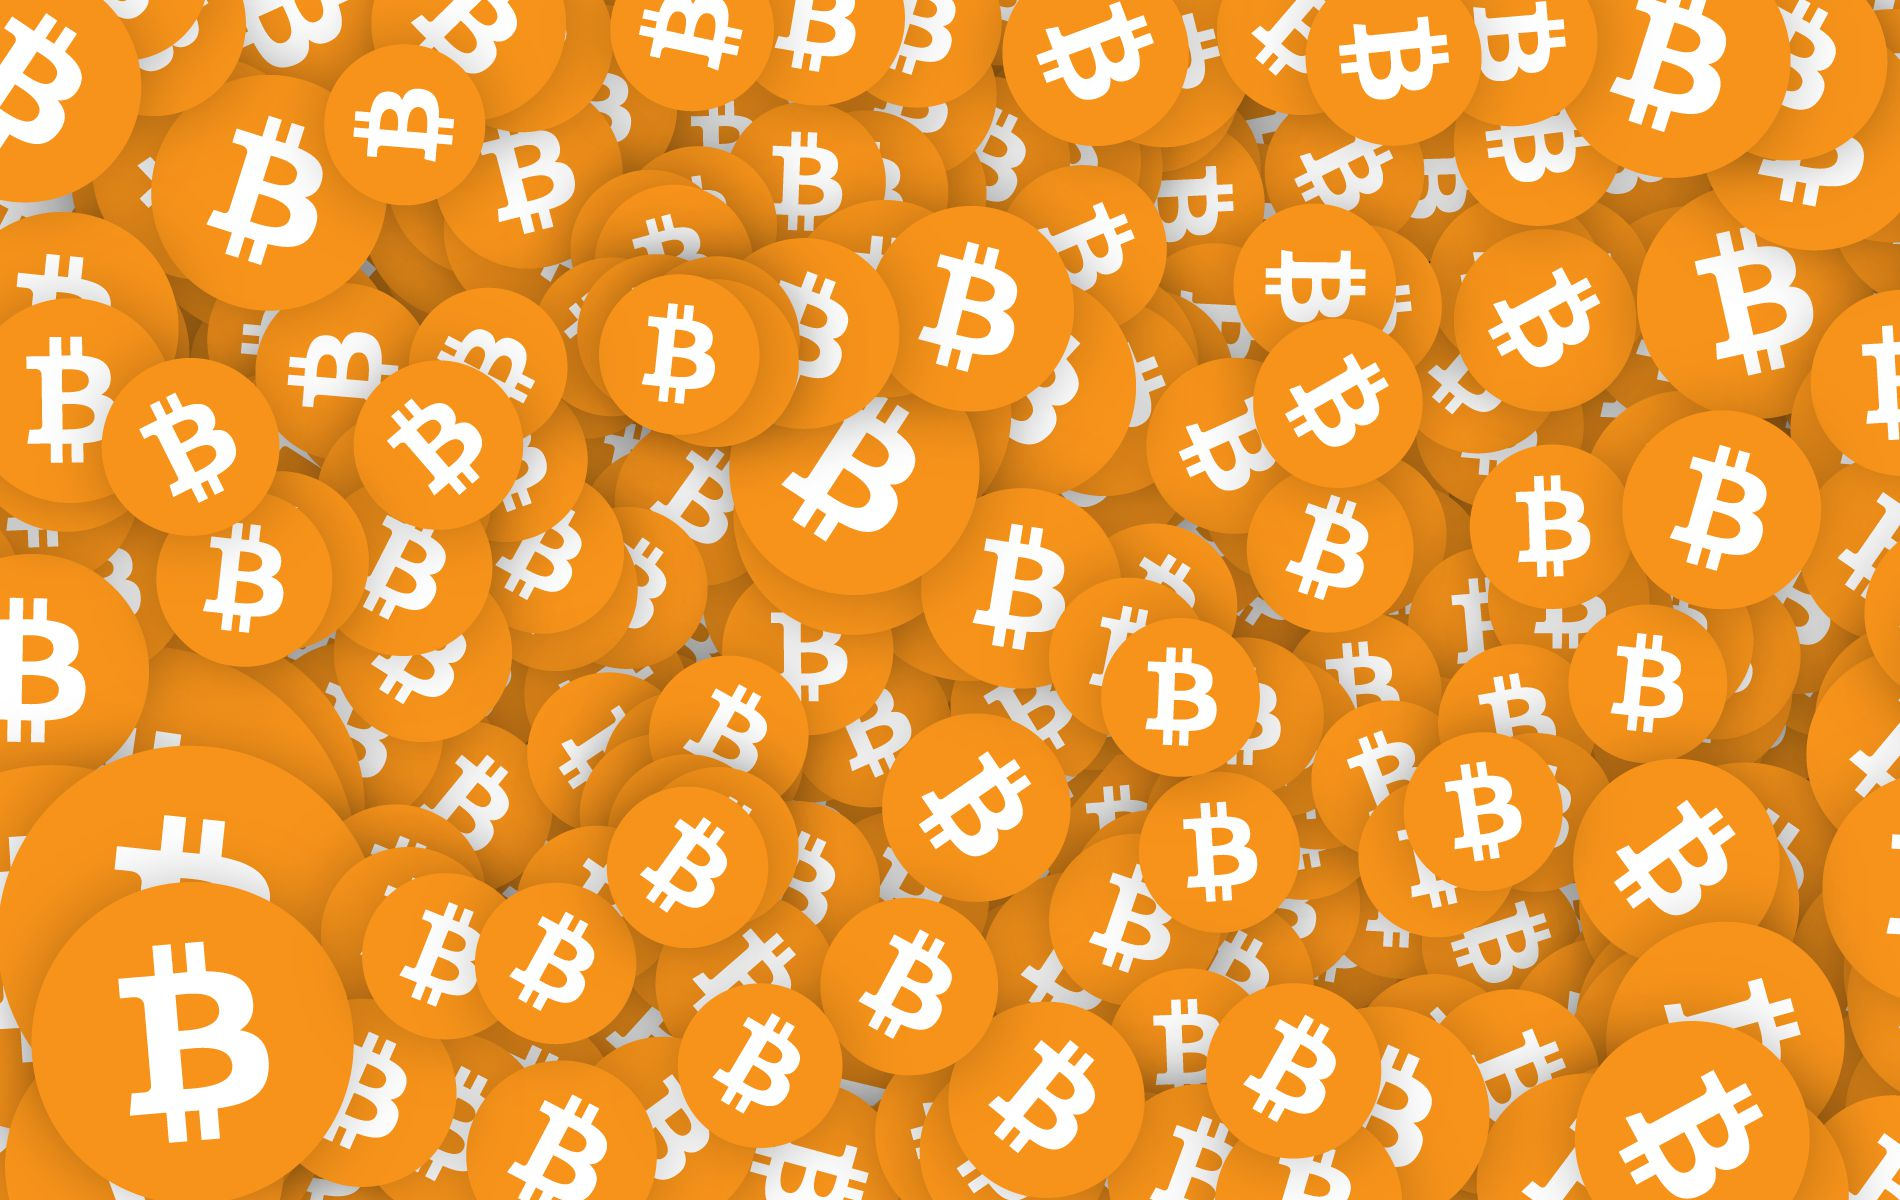 Money Wallpaper Hd 3d Bitcoin Wallpapers And Photos 4k Full Hd Everest Hill